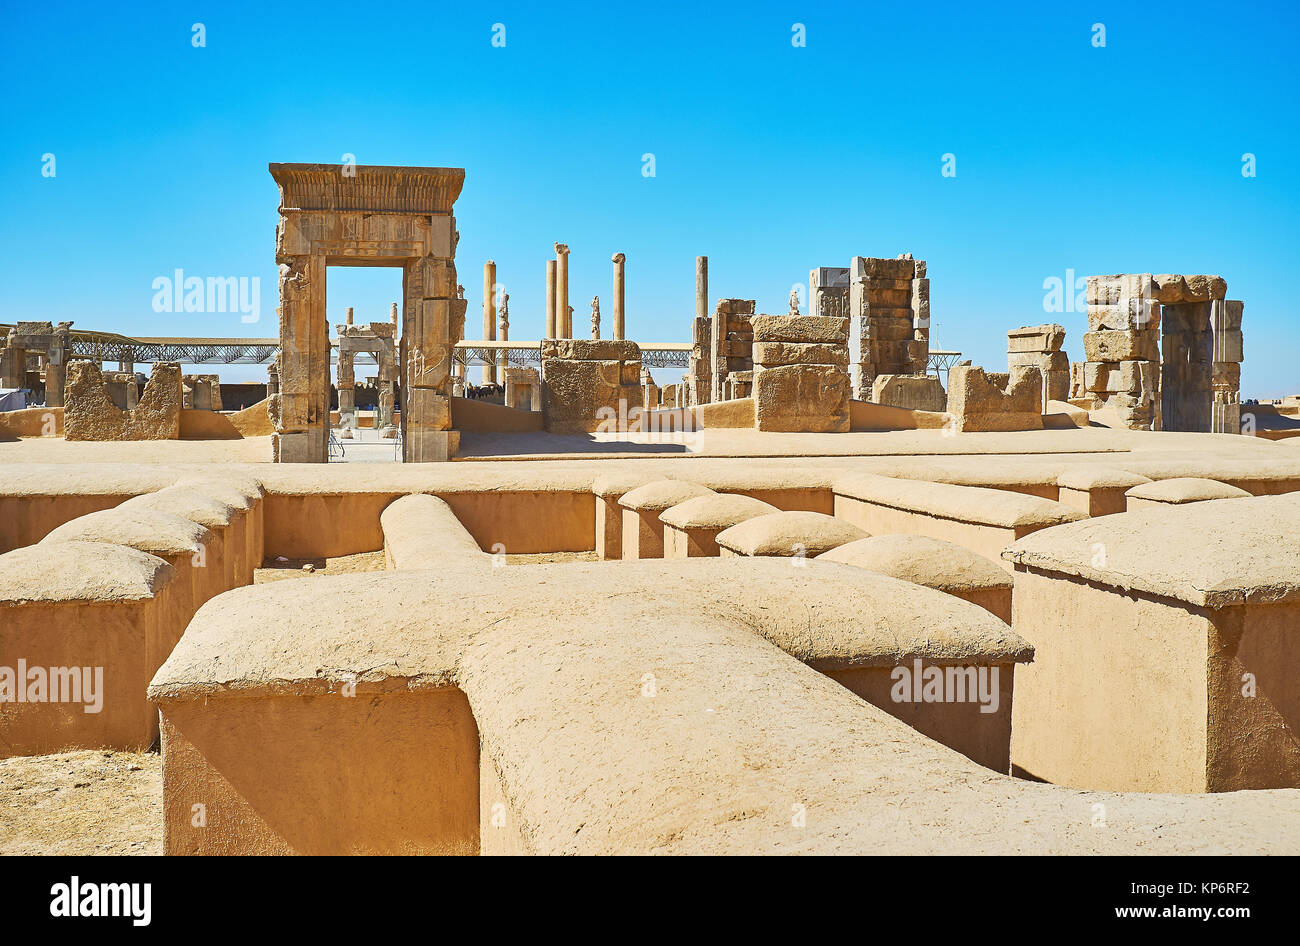 Preserved stone gates of Hundred Columns Hall, located in Persepolis archaeological site, Iran. - Stock Image